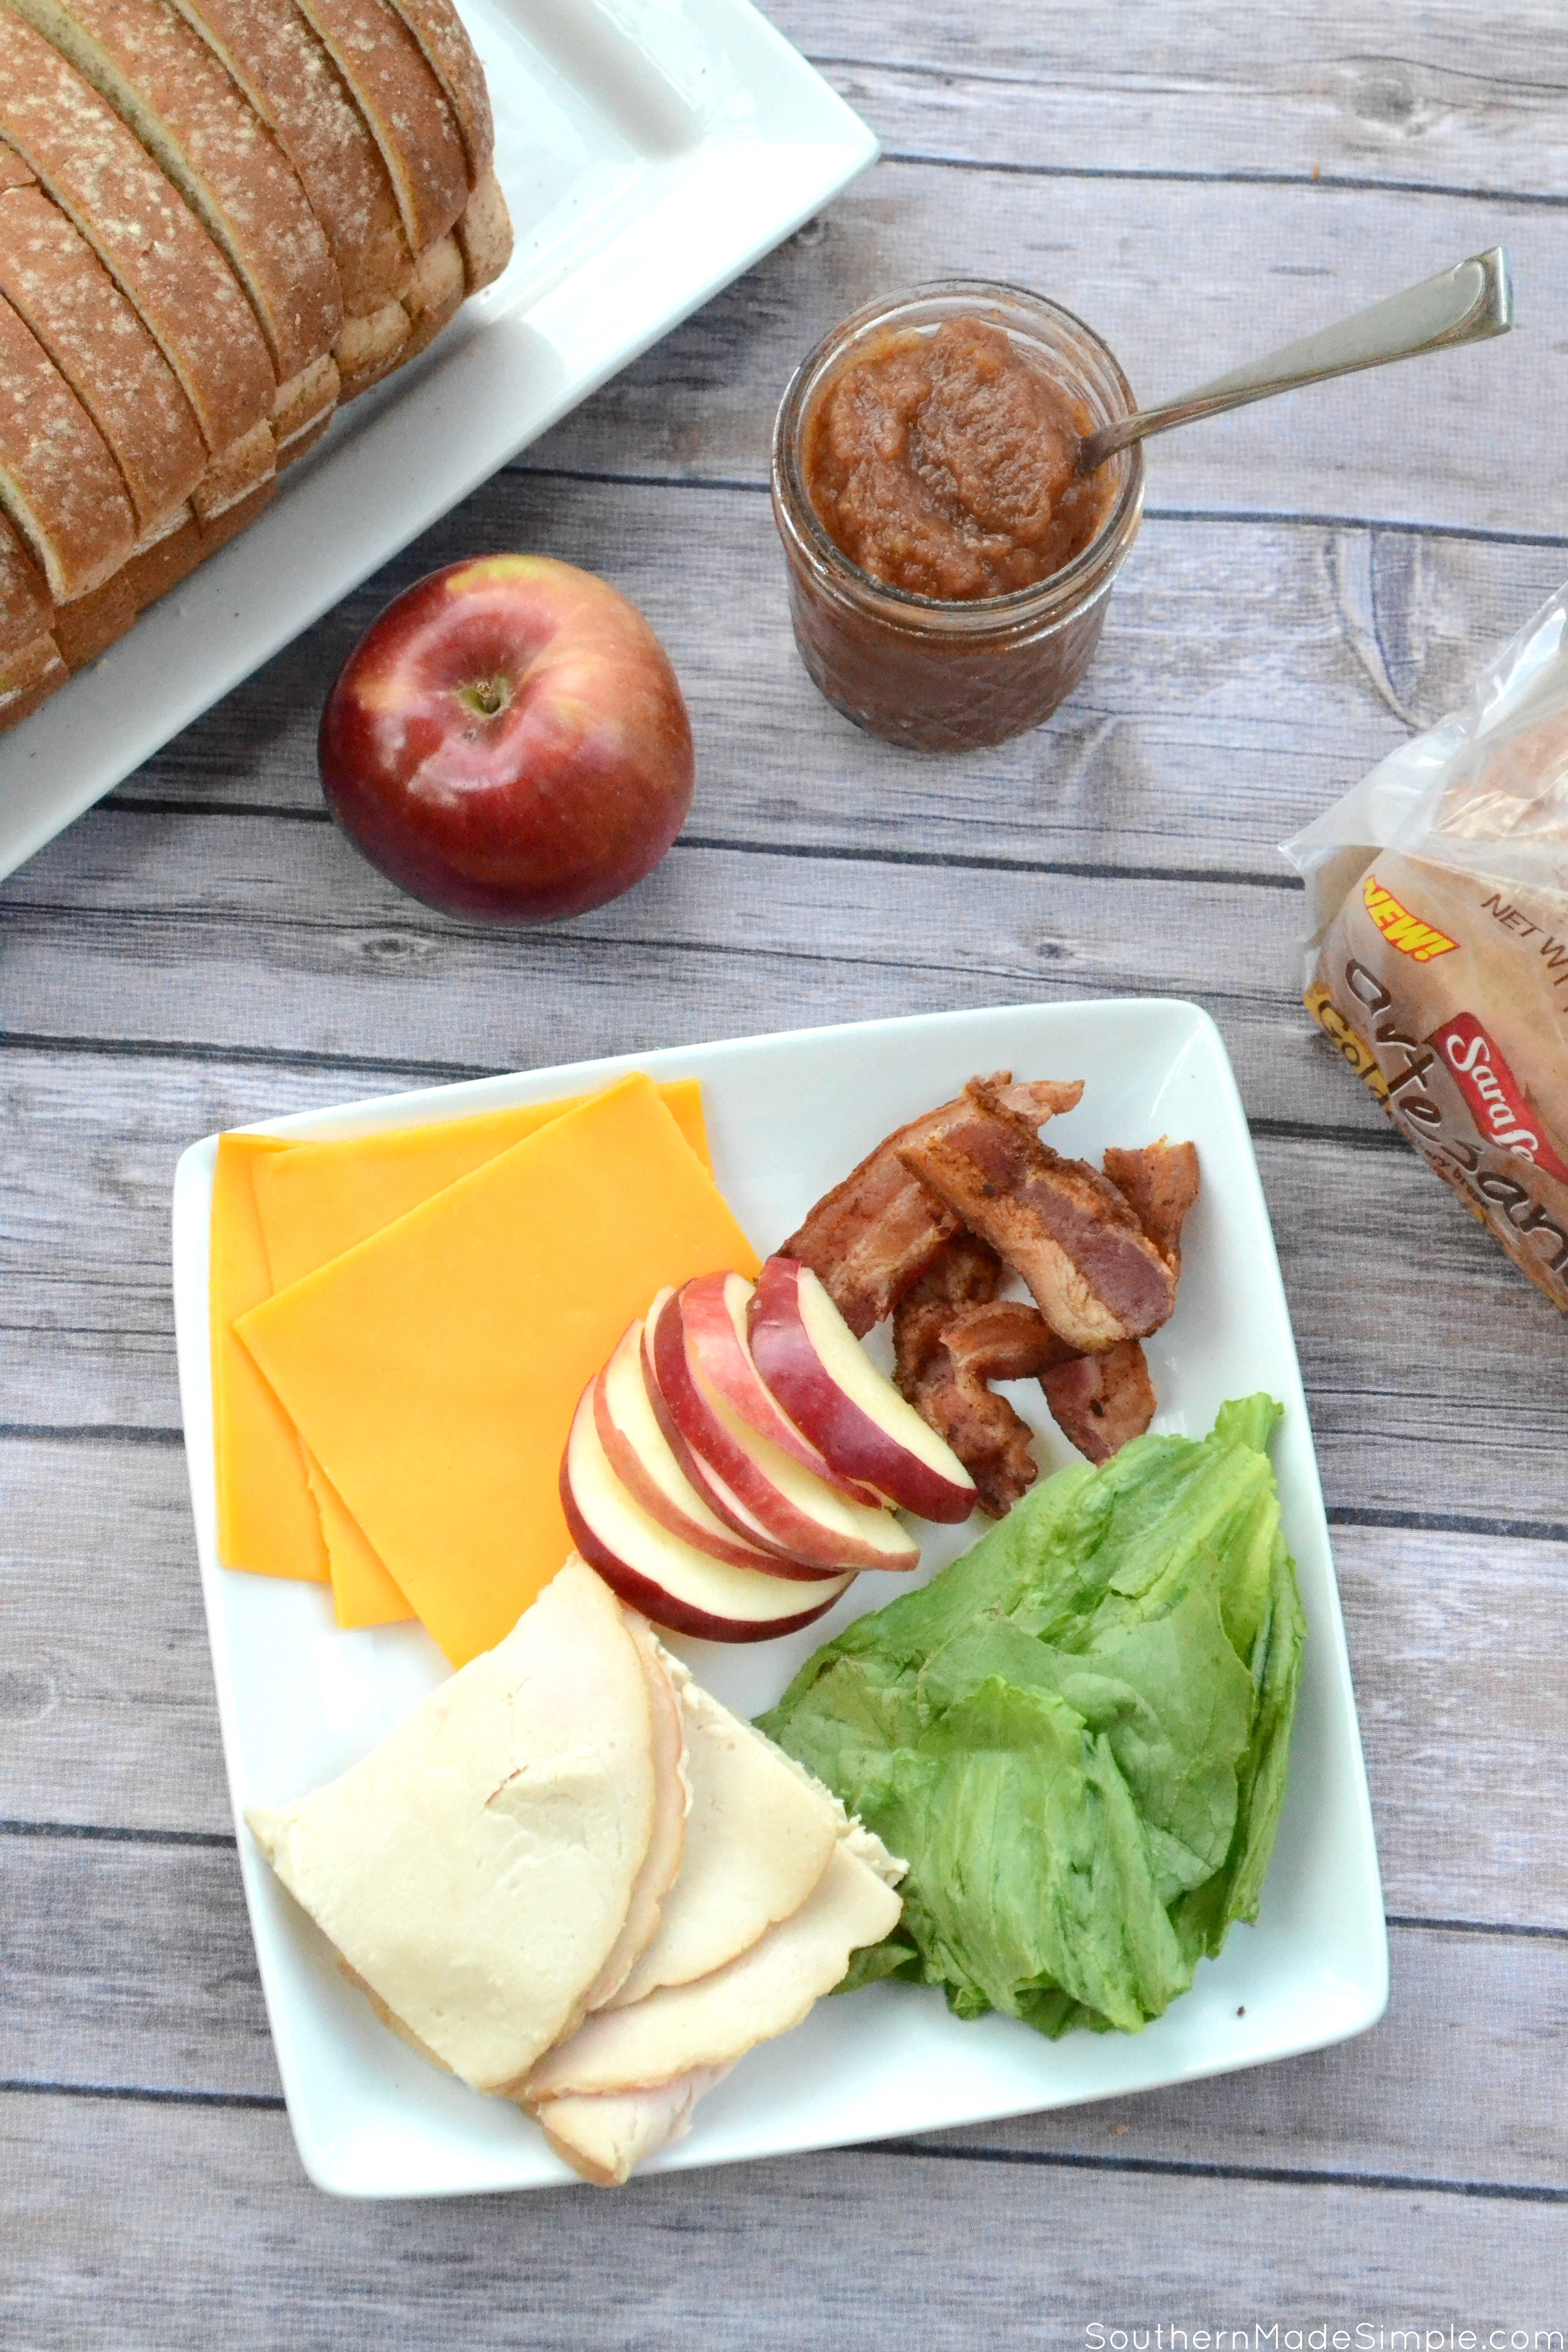 Forget what you know about turkey sandwiches. This Carved Turkey, Cheddar and Apple Butter Club Sandwich is stacked high with fresh apple slices, crispy bacon, thick carved turkey breast and the sweetest apple butter your mouth has ever tasted, and it's all nestled between three slices of Sara Lee Artesano Golden Wheat Bread! #ArtesanoGoldenWheat #Ad